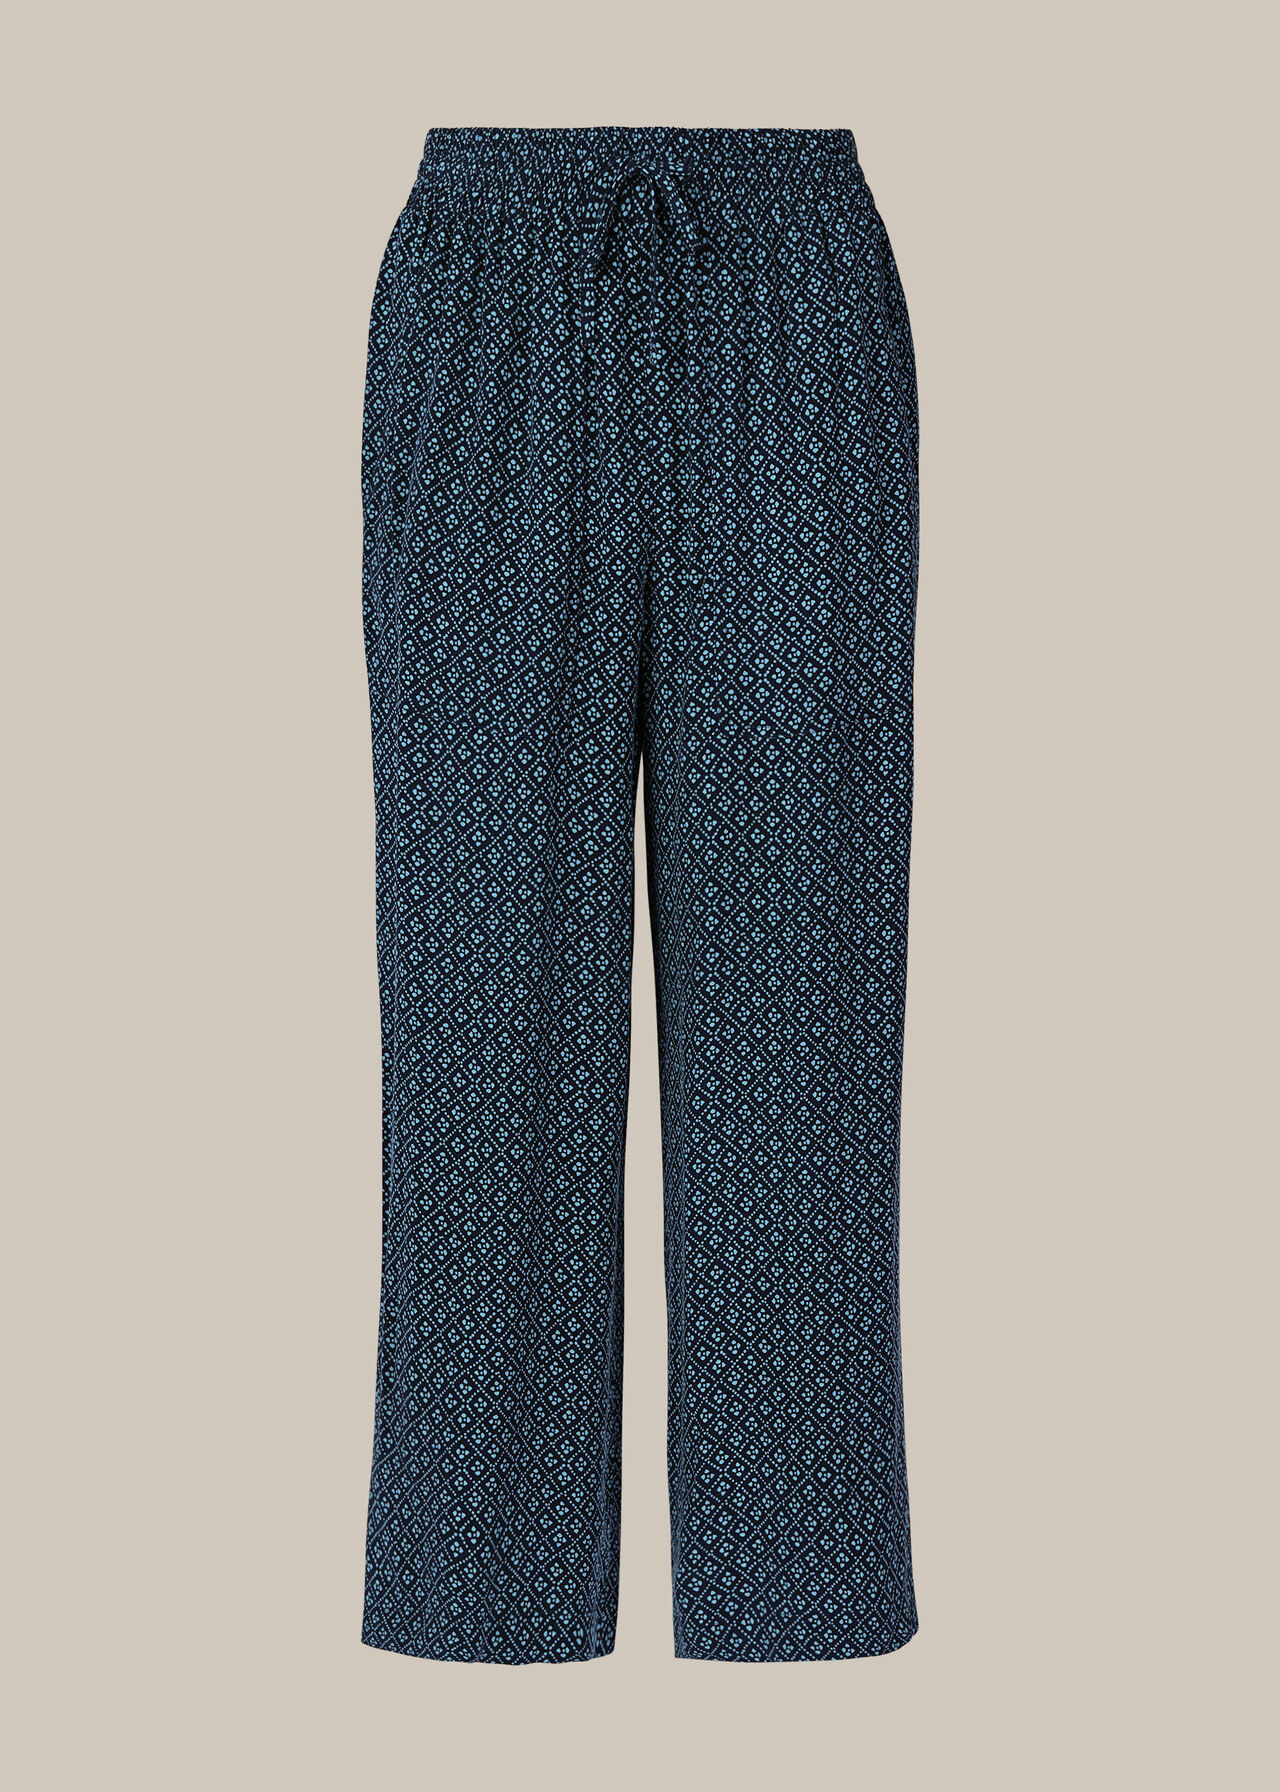 Lattice Print Trouser